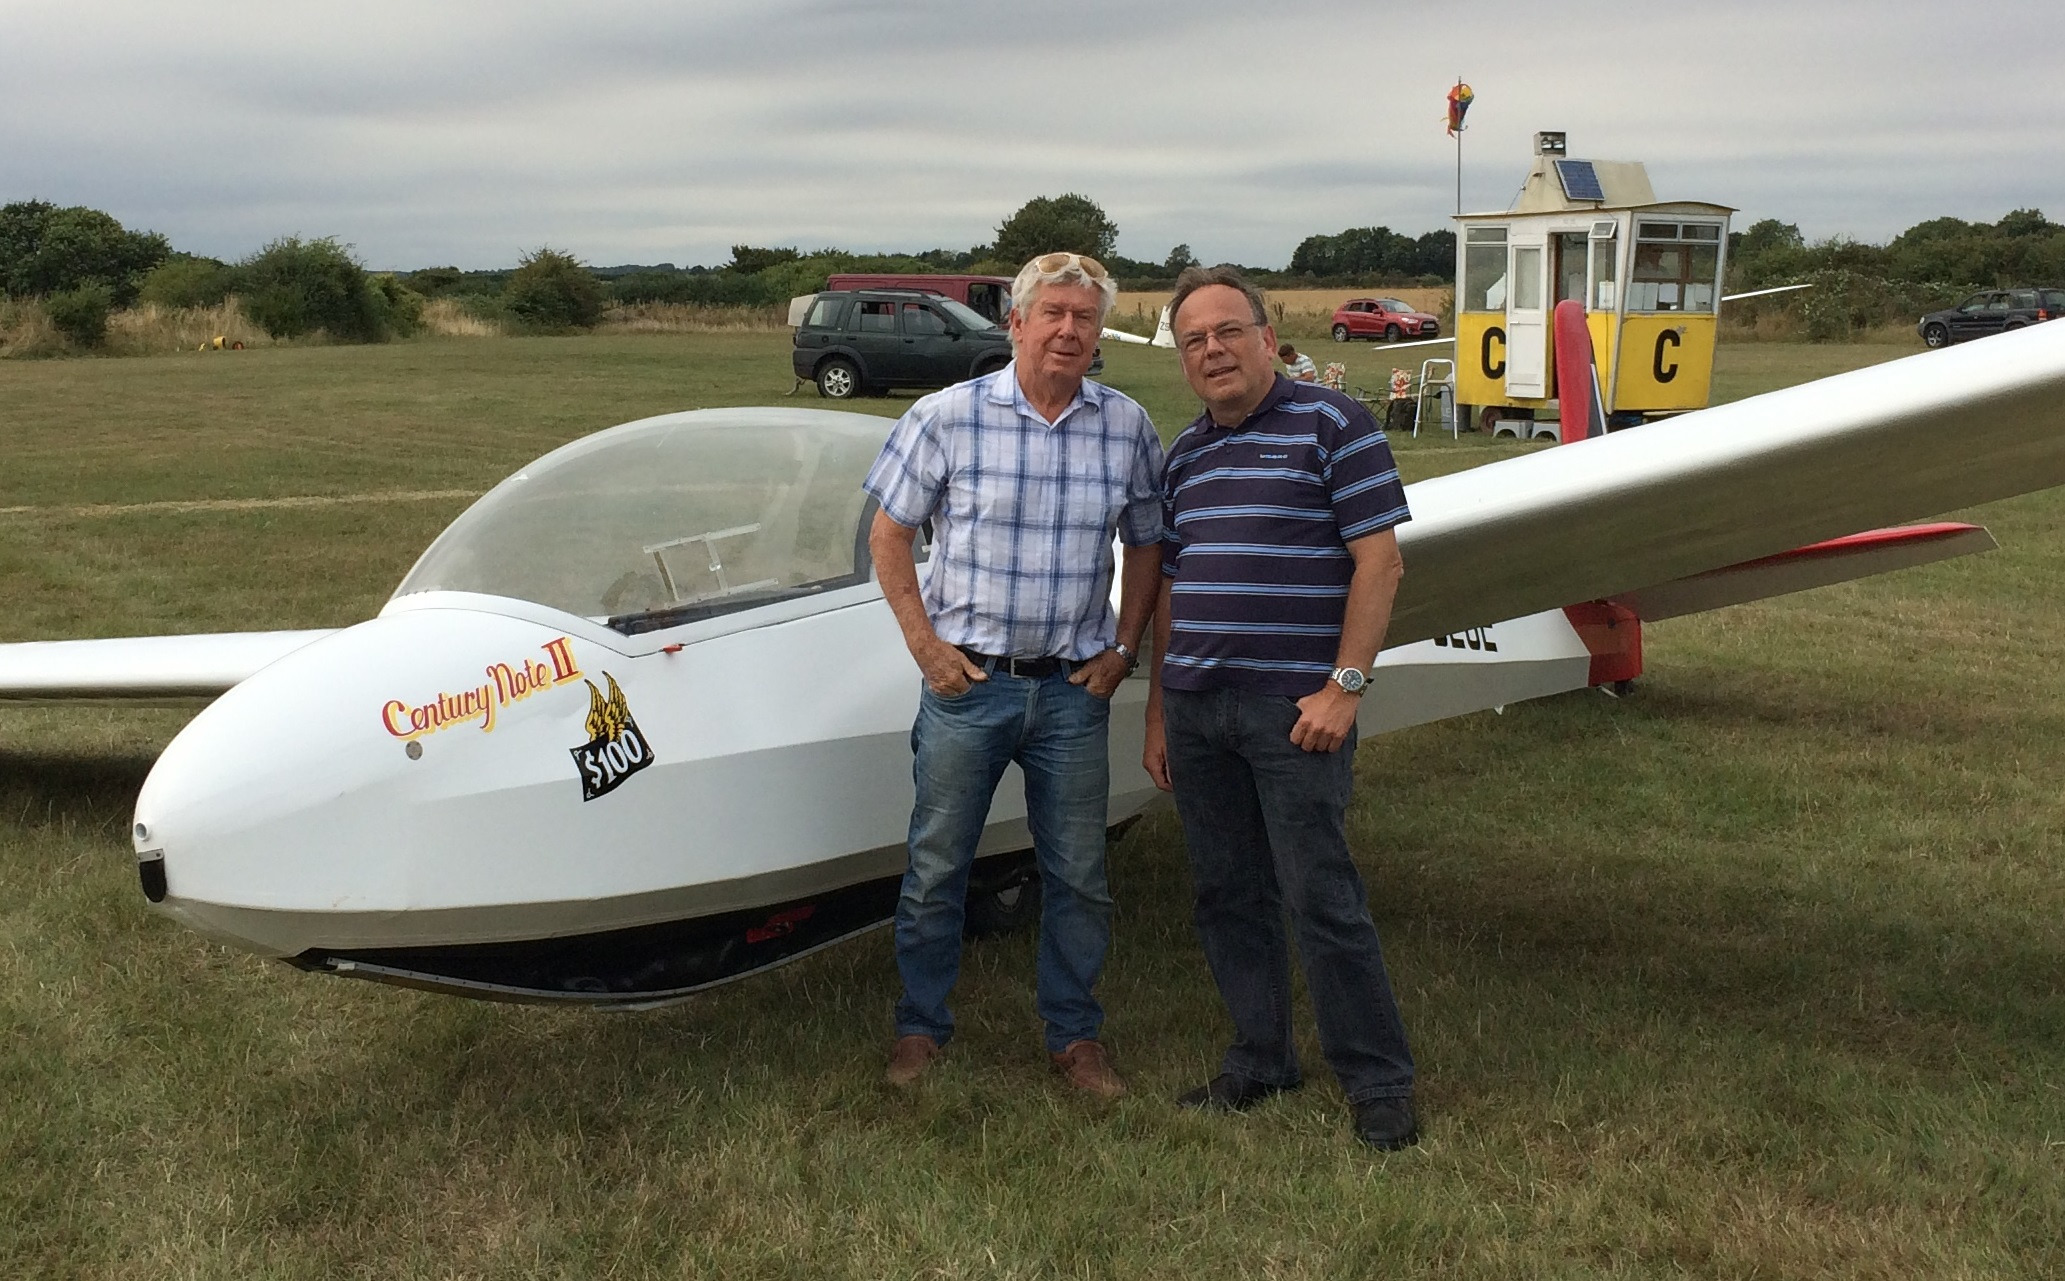 After the trial gliding lesson